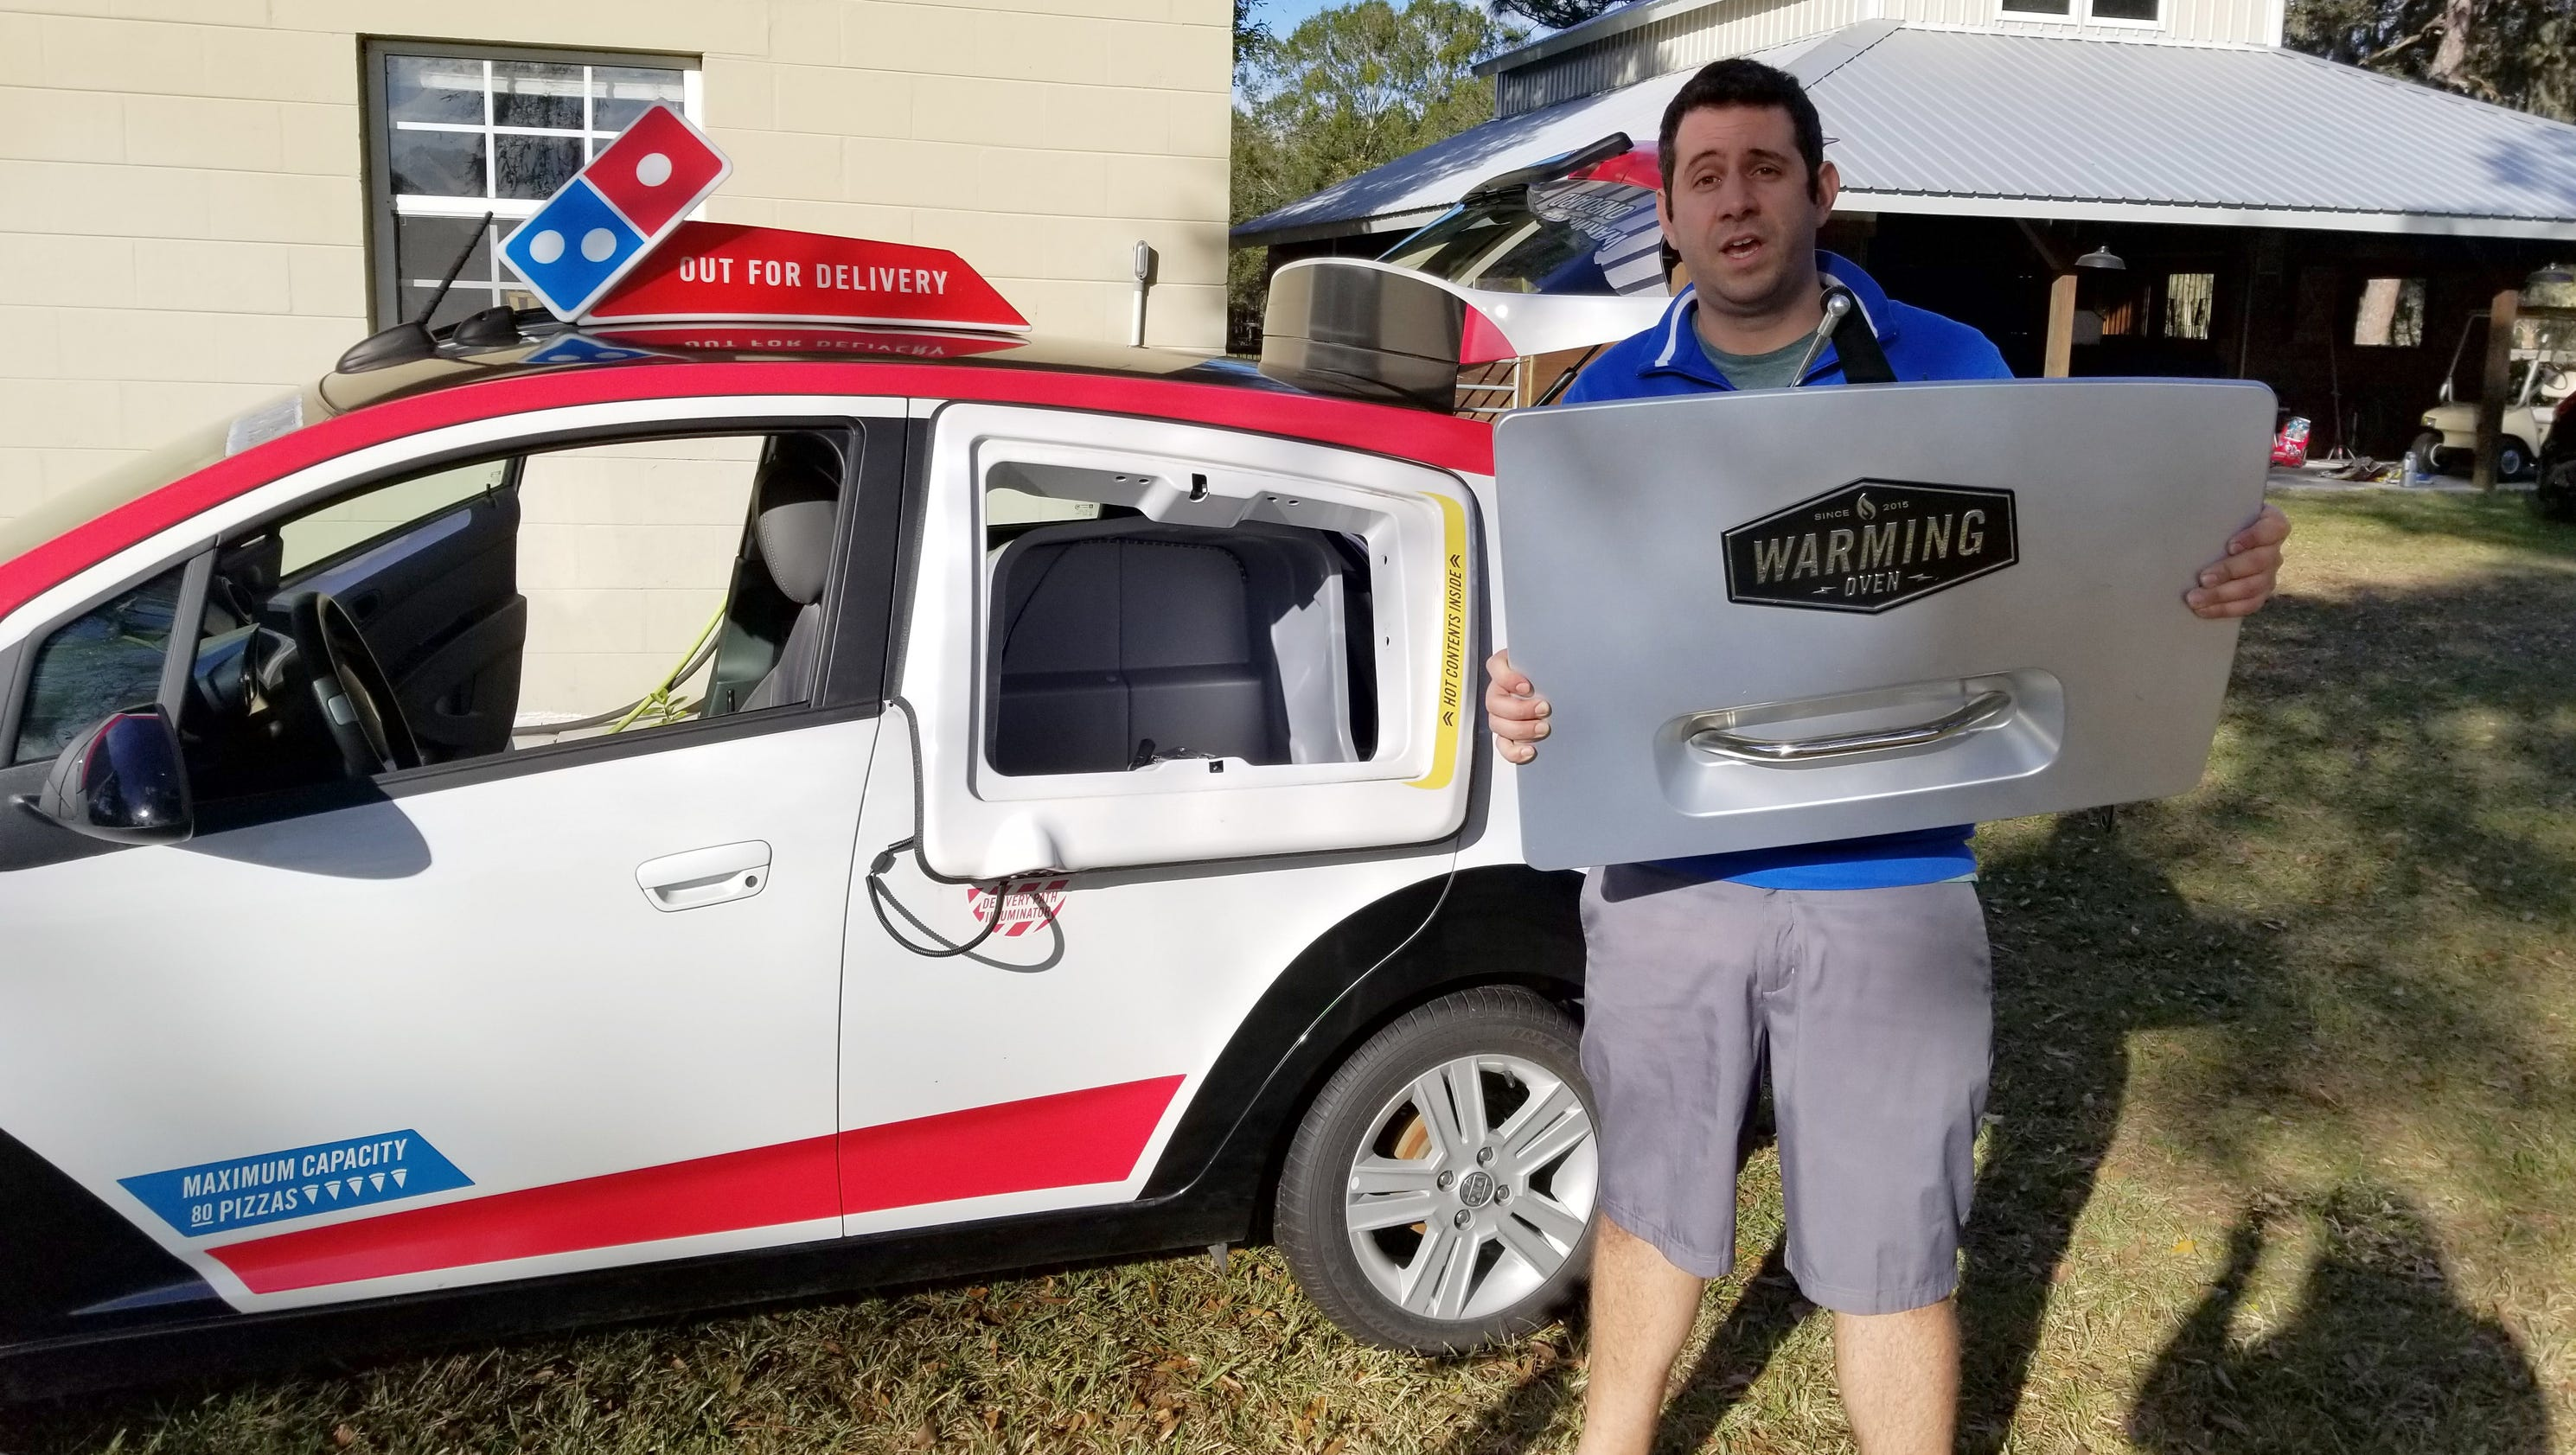 youtuber who bought fixed domino 39 s pizza car facing legal threats. Black Bedroom Furniture Sets. Home Design Ideas